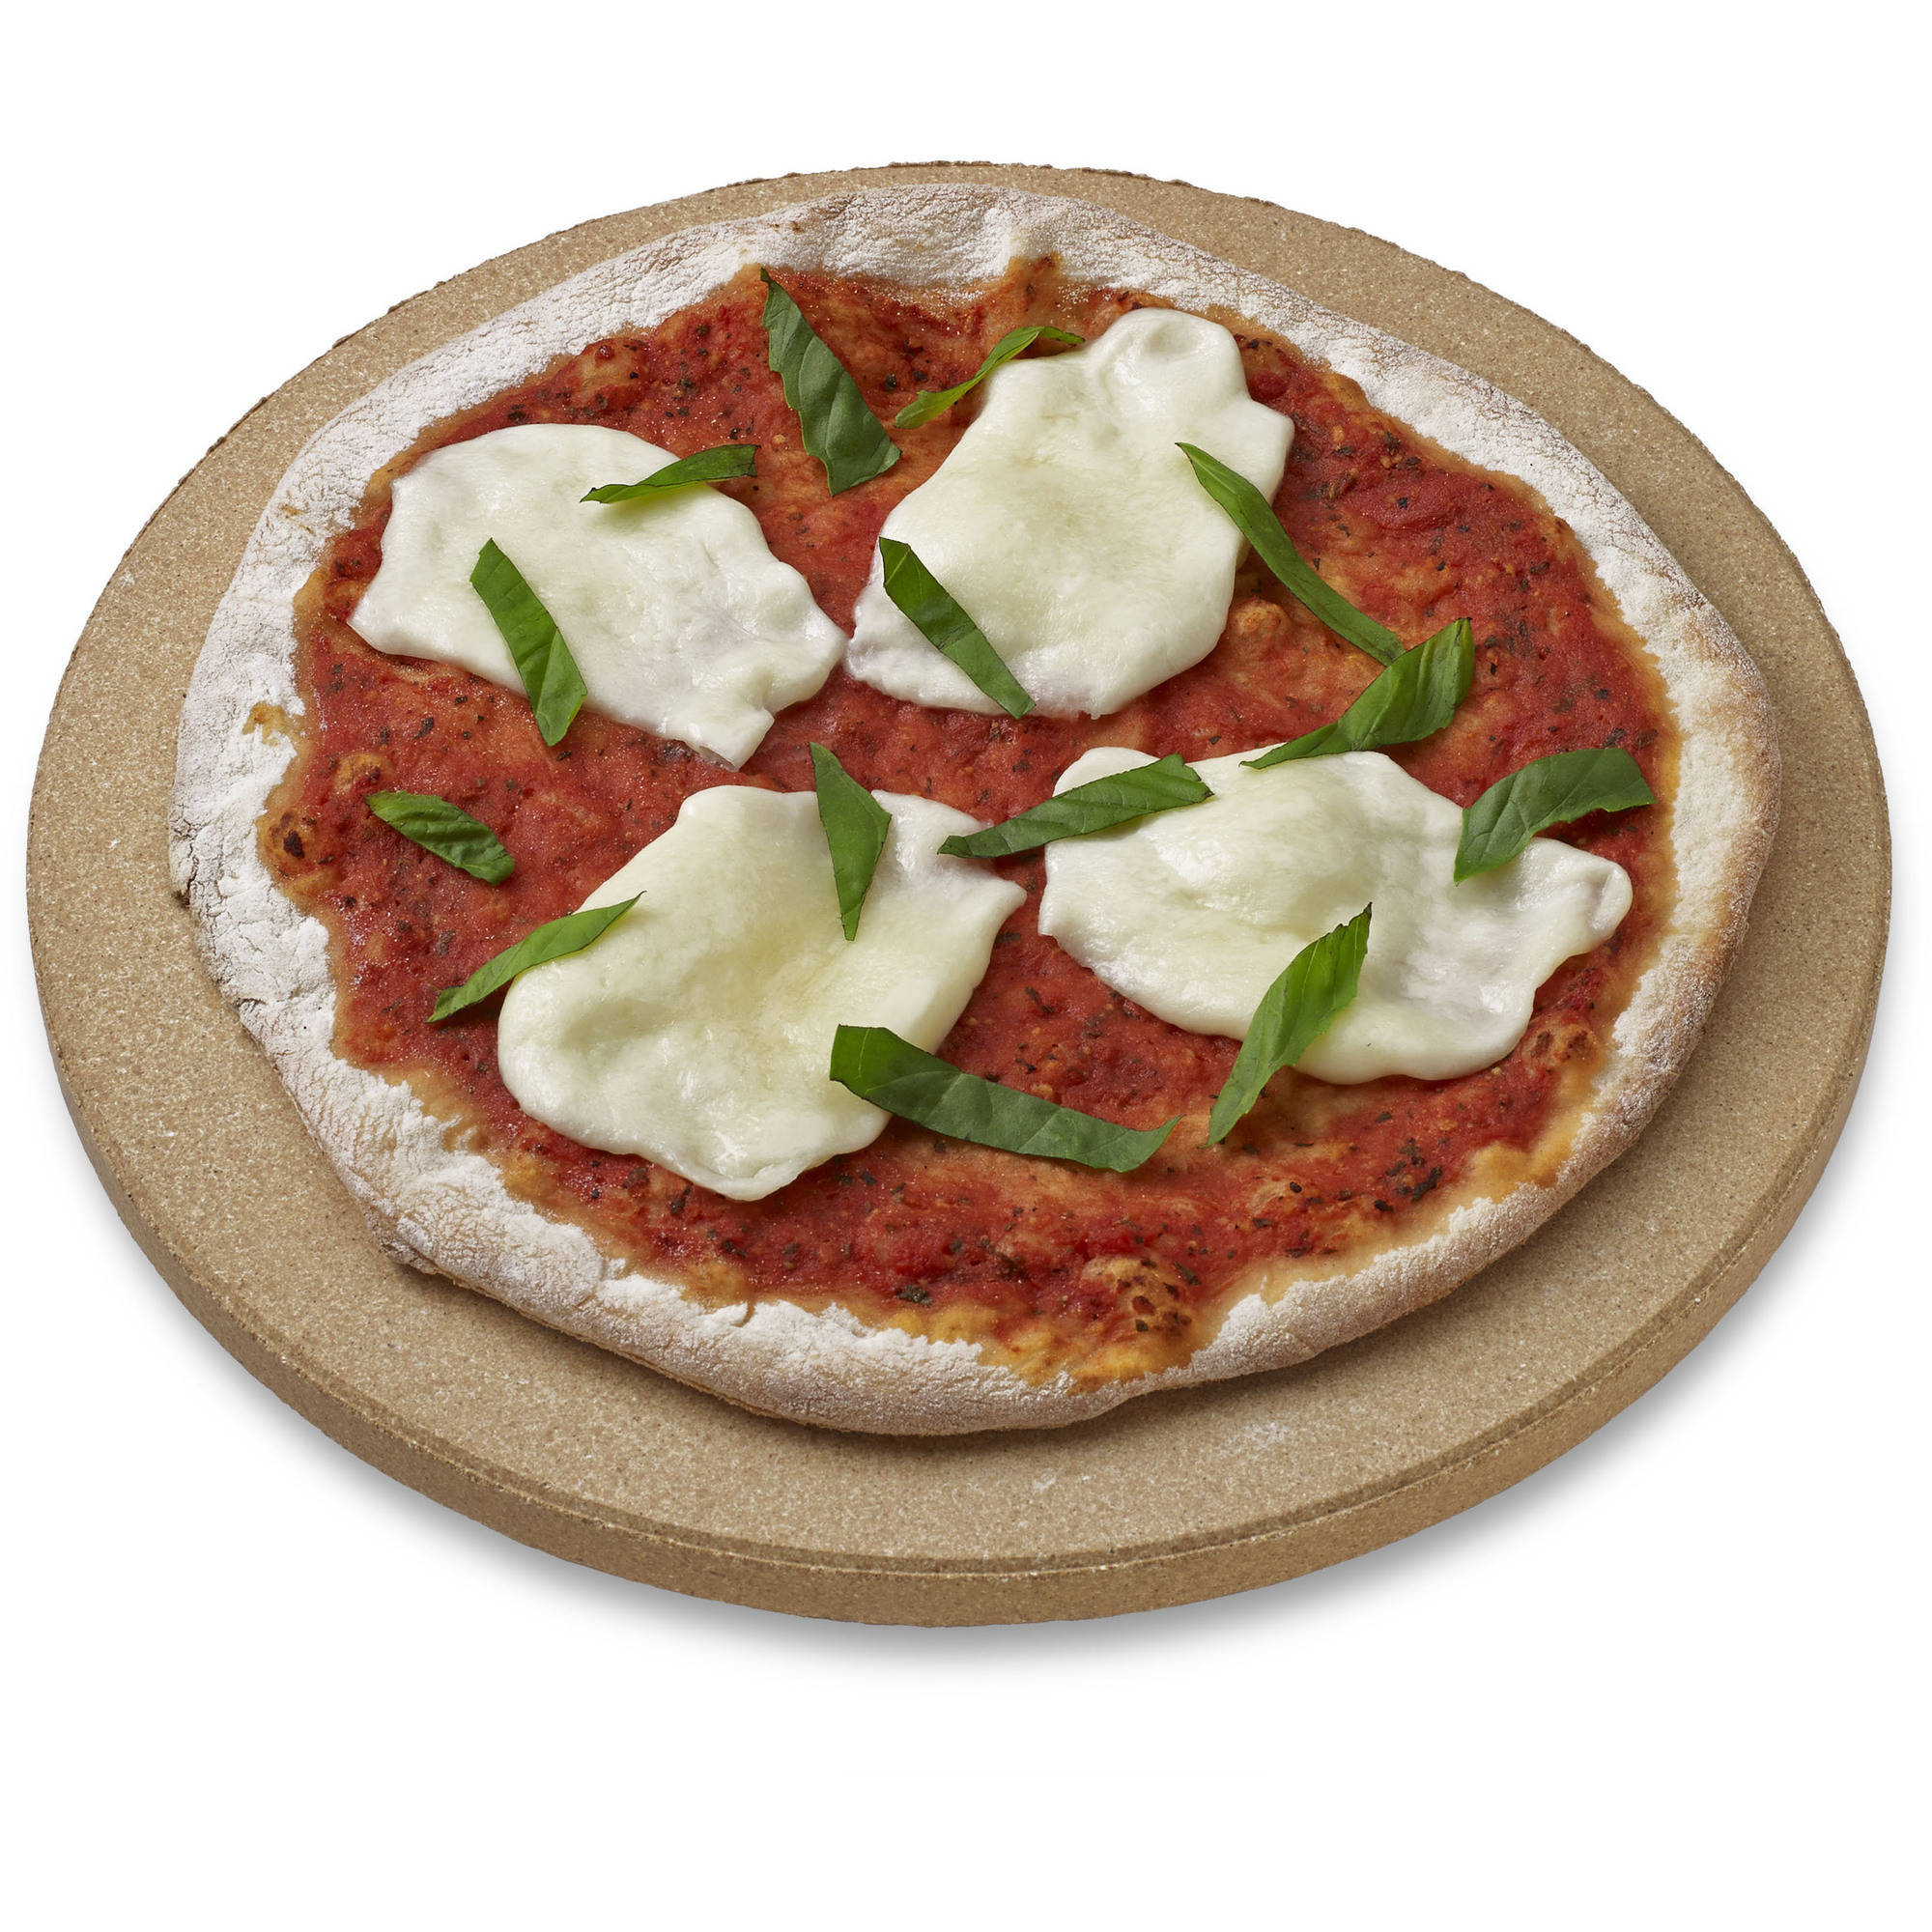 "Honey Can Do Pizza Stone 10.5"" Personal-Size Round by Honey Can Do"